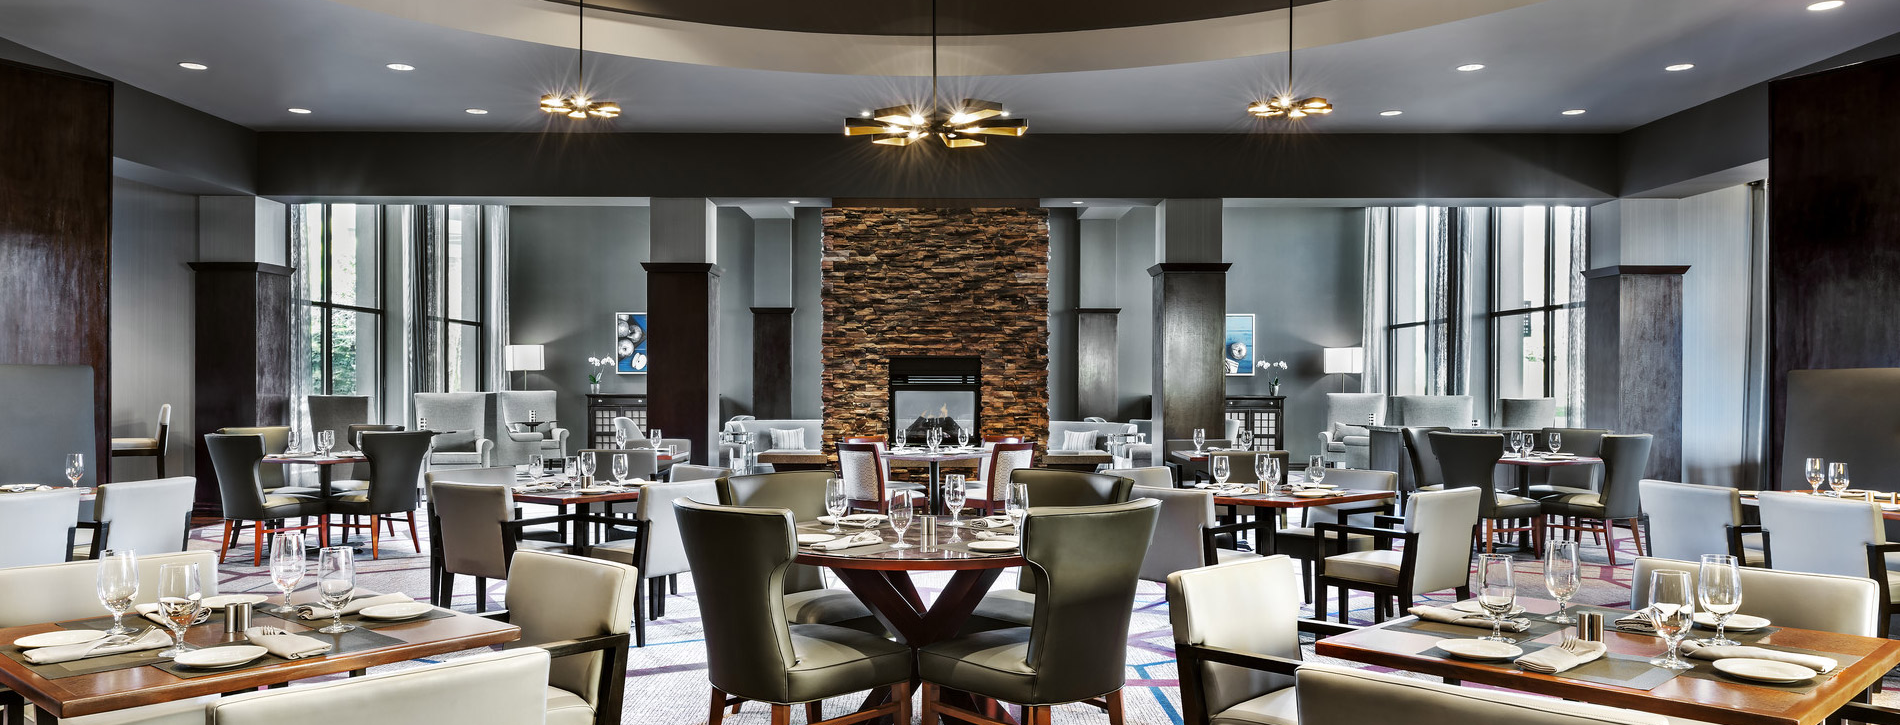 Join us for Winterlicious from January 31st to February 13th! View our lunch & dinner menus here.